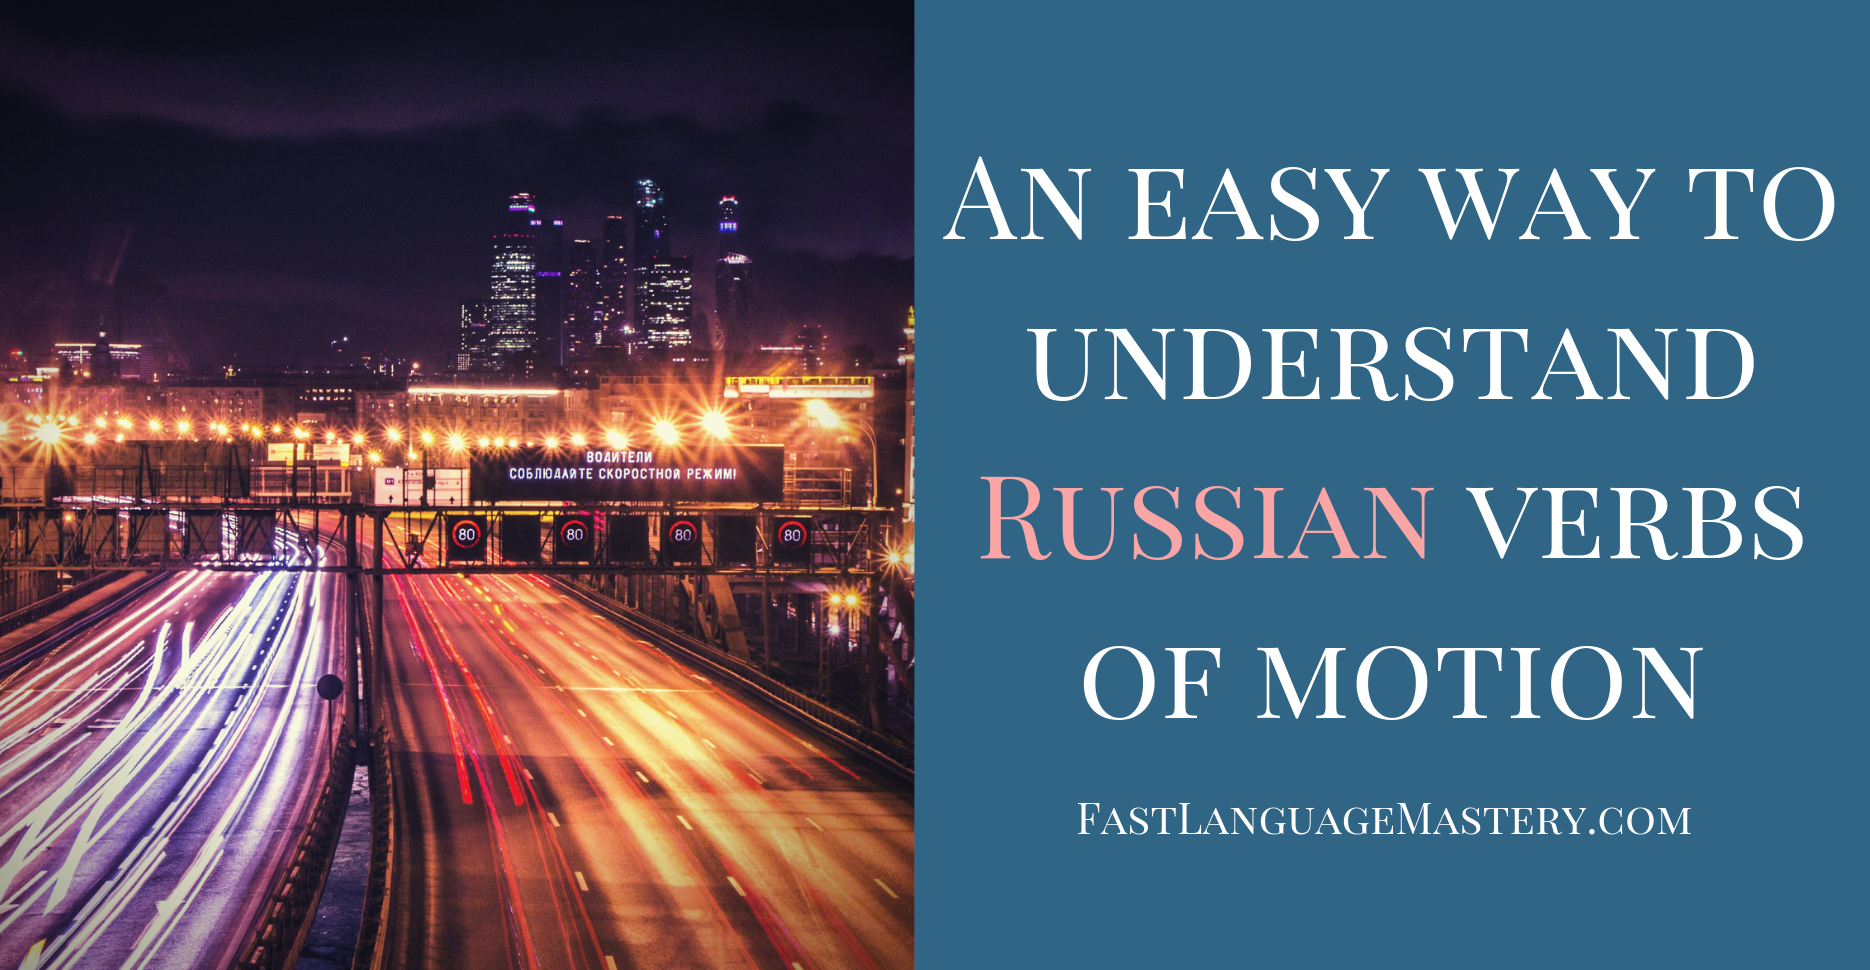 An easy way to understand Russian verbs of motion